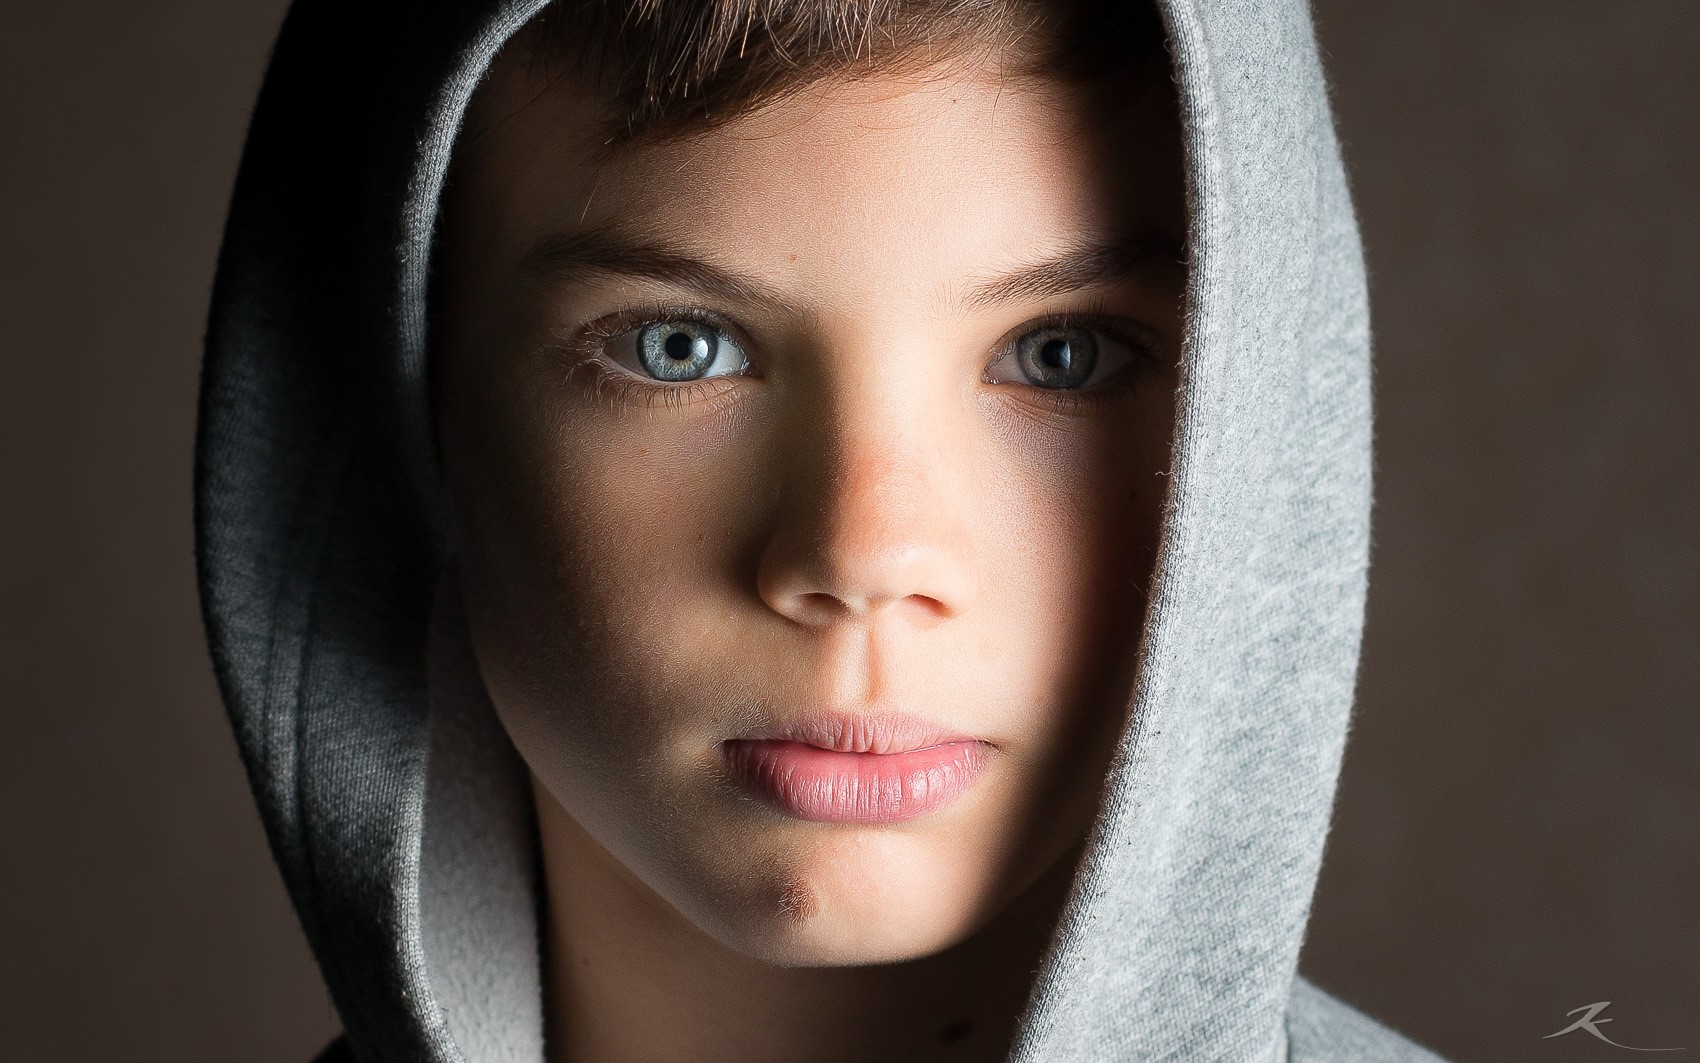 young boy with grey hoodie and deep blue eyes